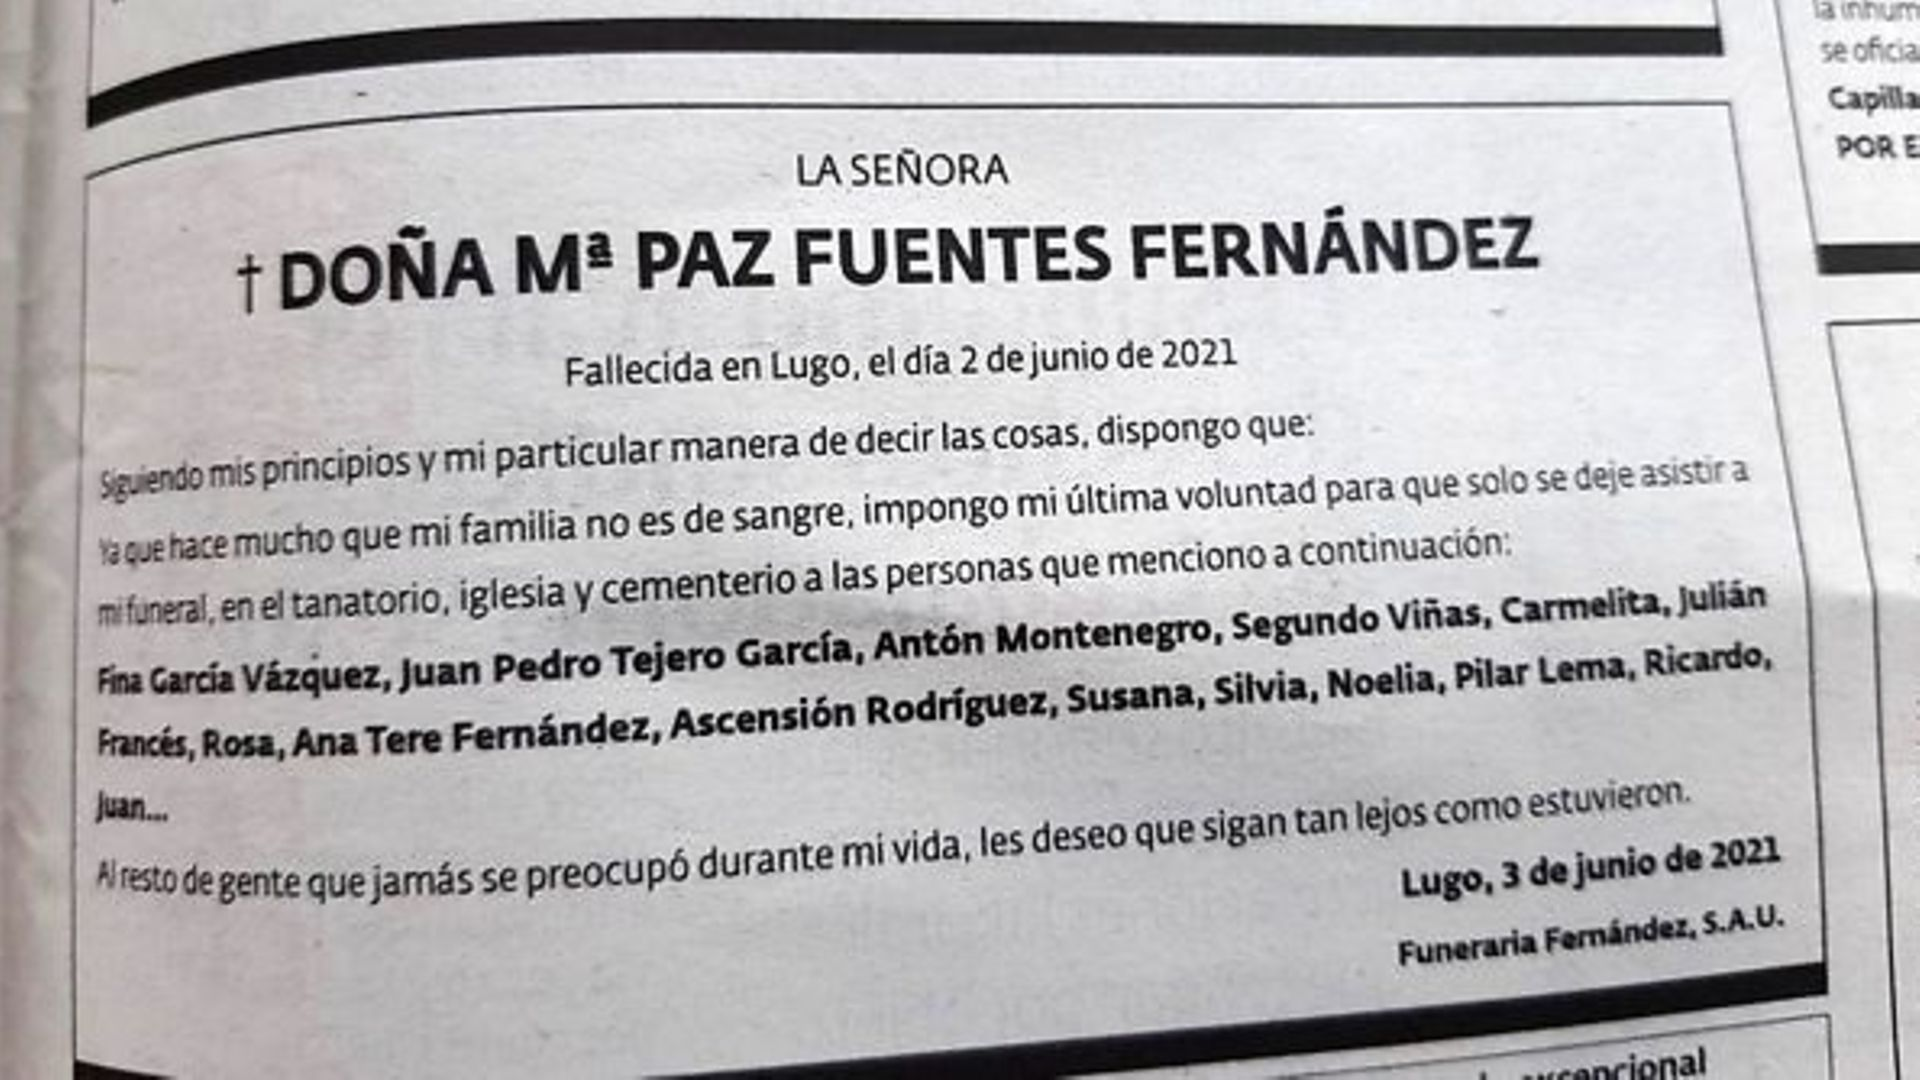 Th funeral notice for María Paz Fuentes Fernández - Credit: Twitter